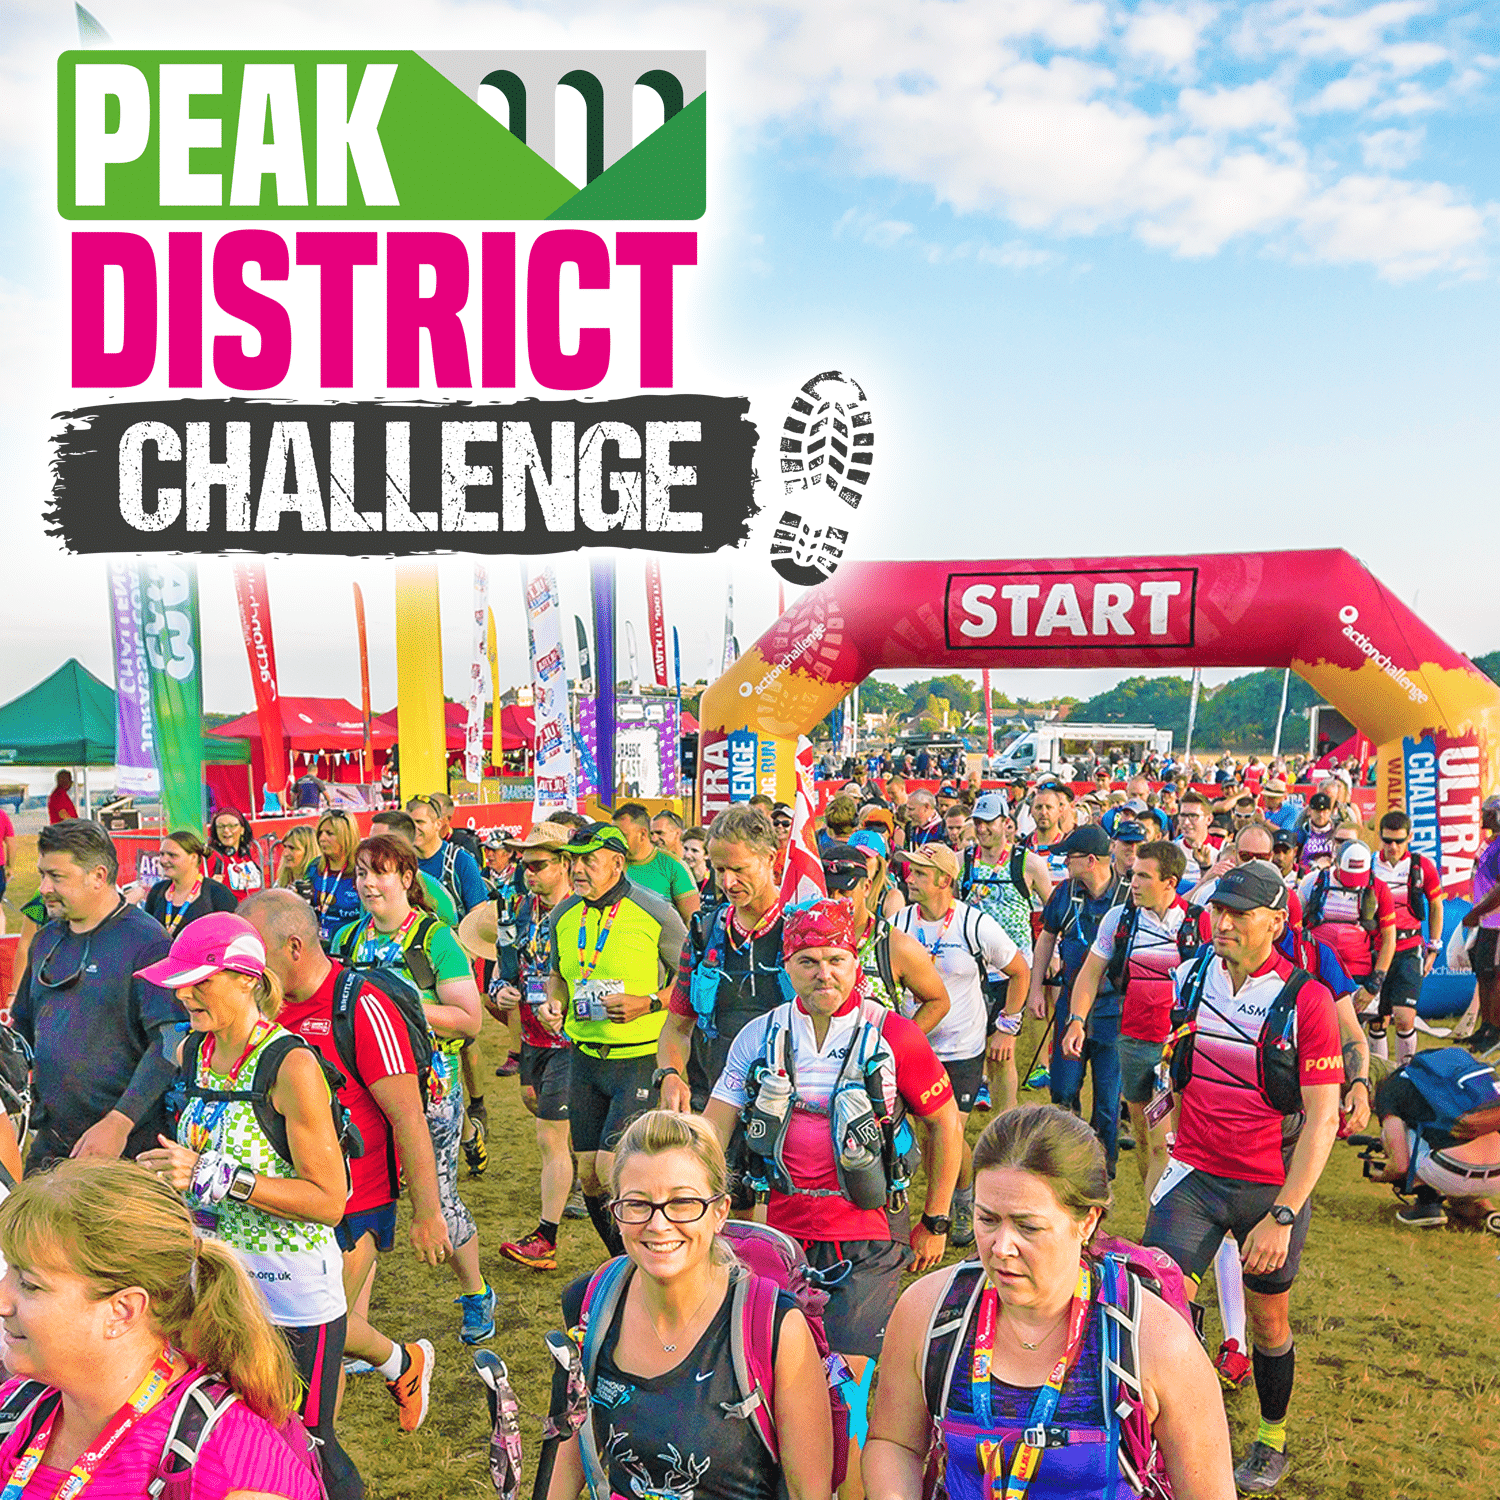 Image shows crowd of participants at the start line with the Peak District Challenge logo